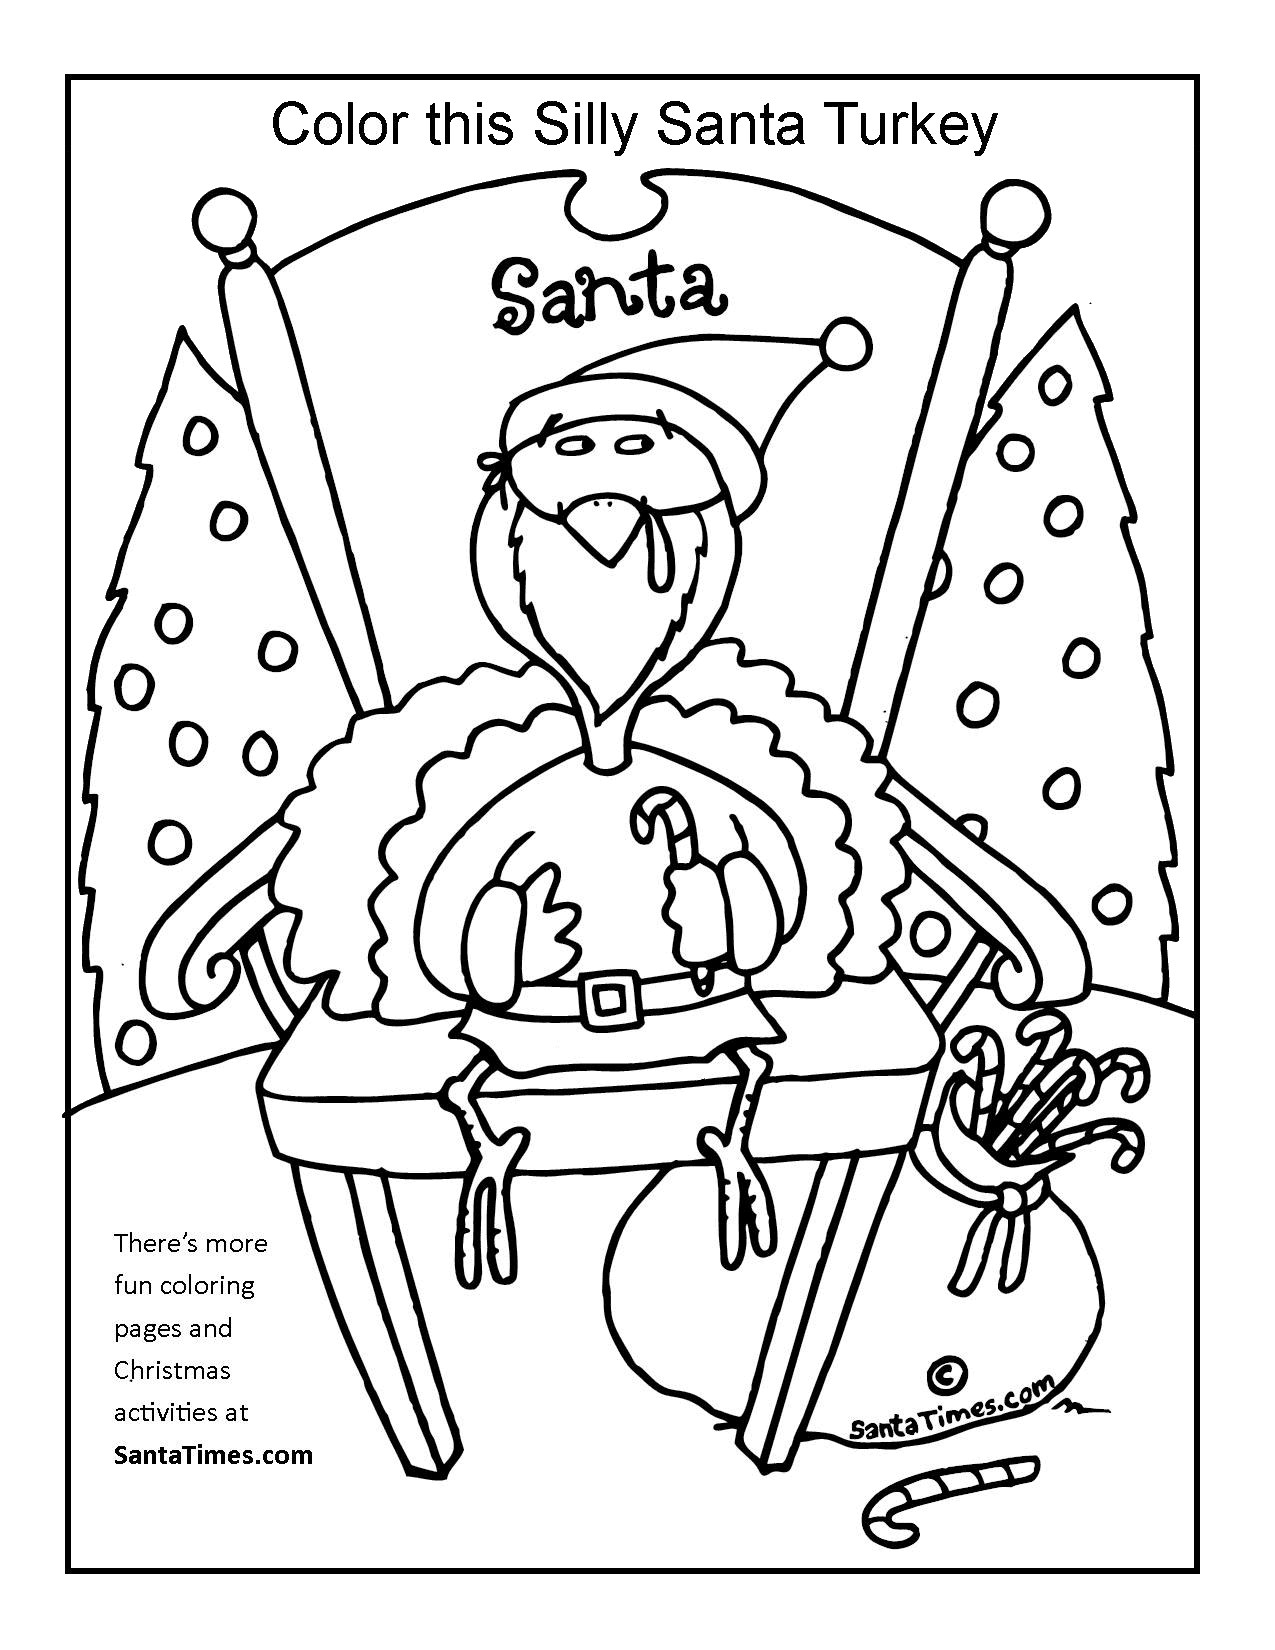 Silly Turkey Sheets Coloring Pages